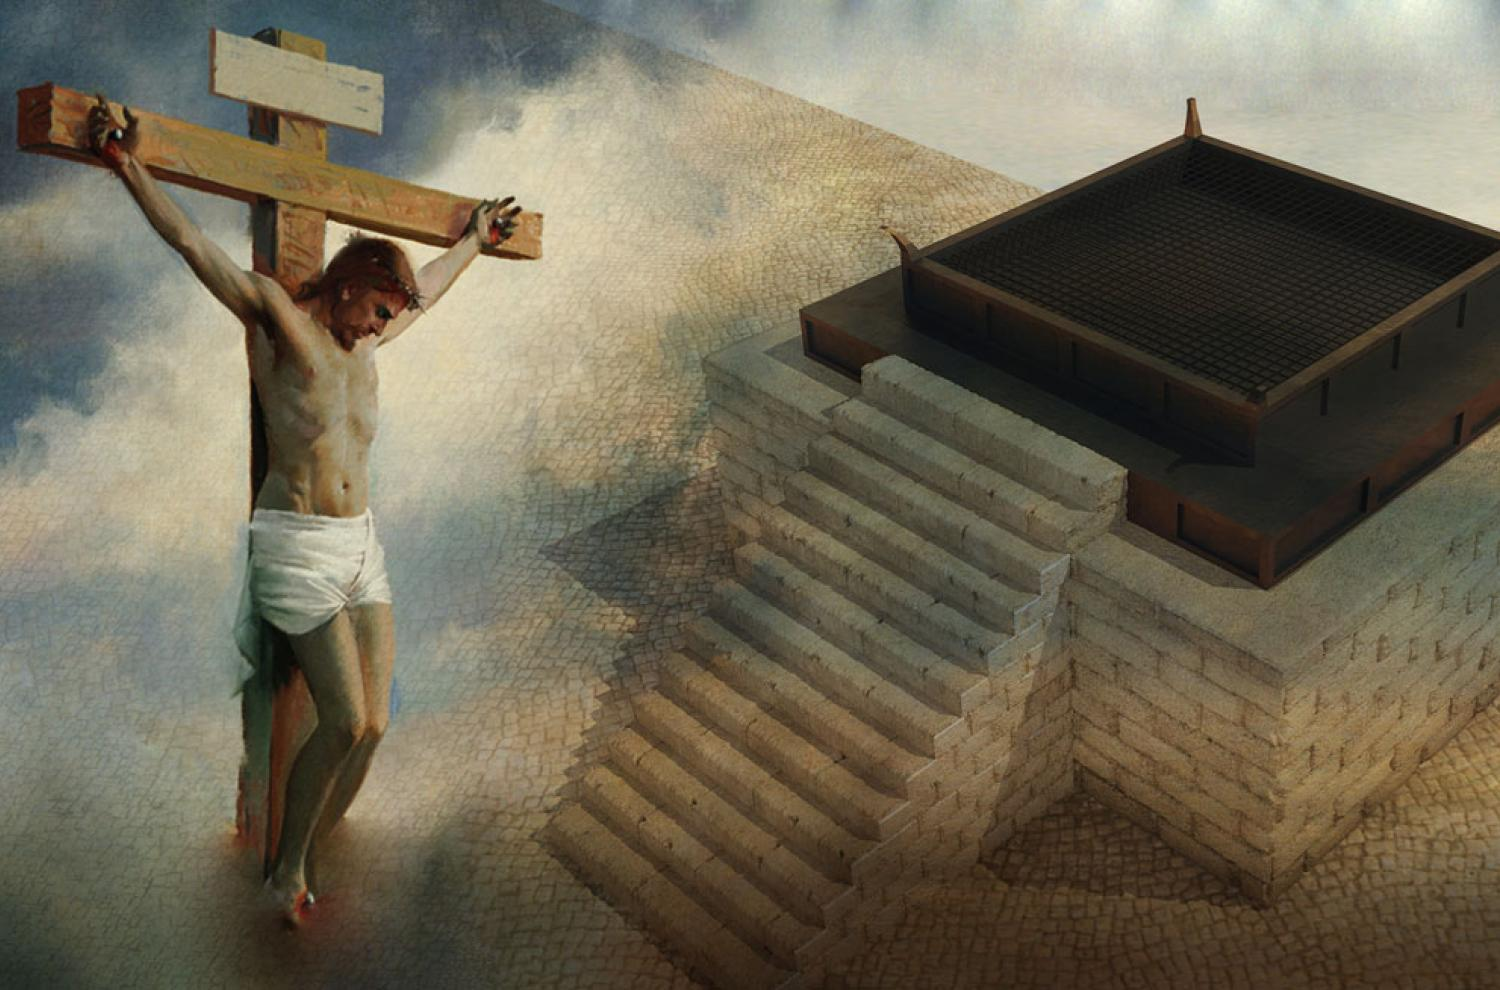 Image featuring The Crucifixion by Harry Anderson and illustration by 2dmolier via Adobe Stock